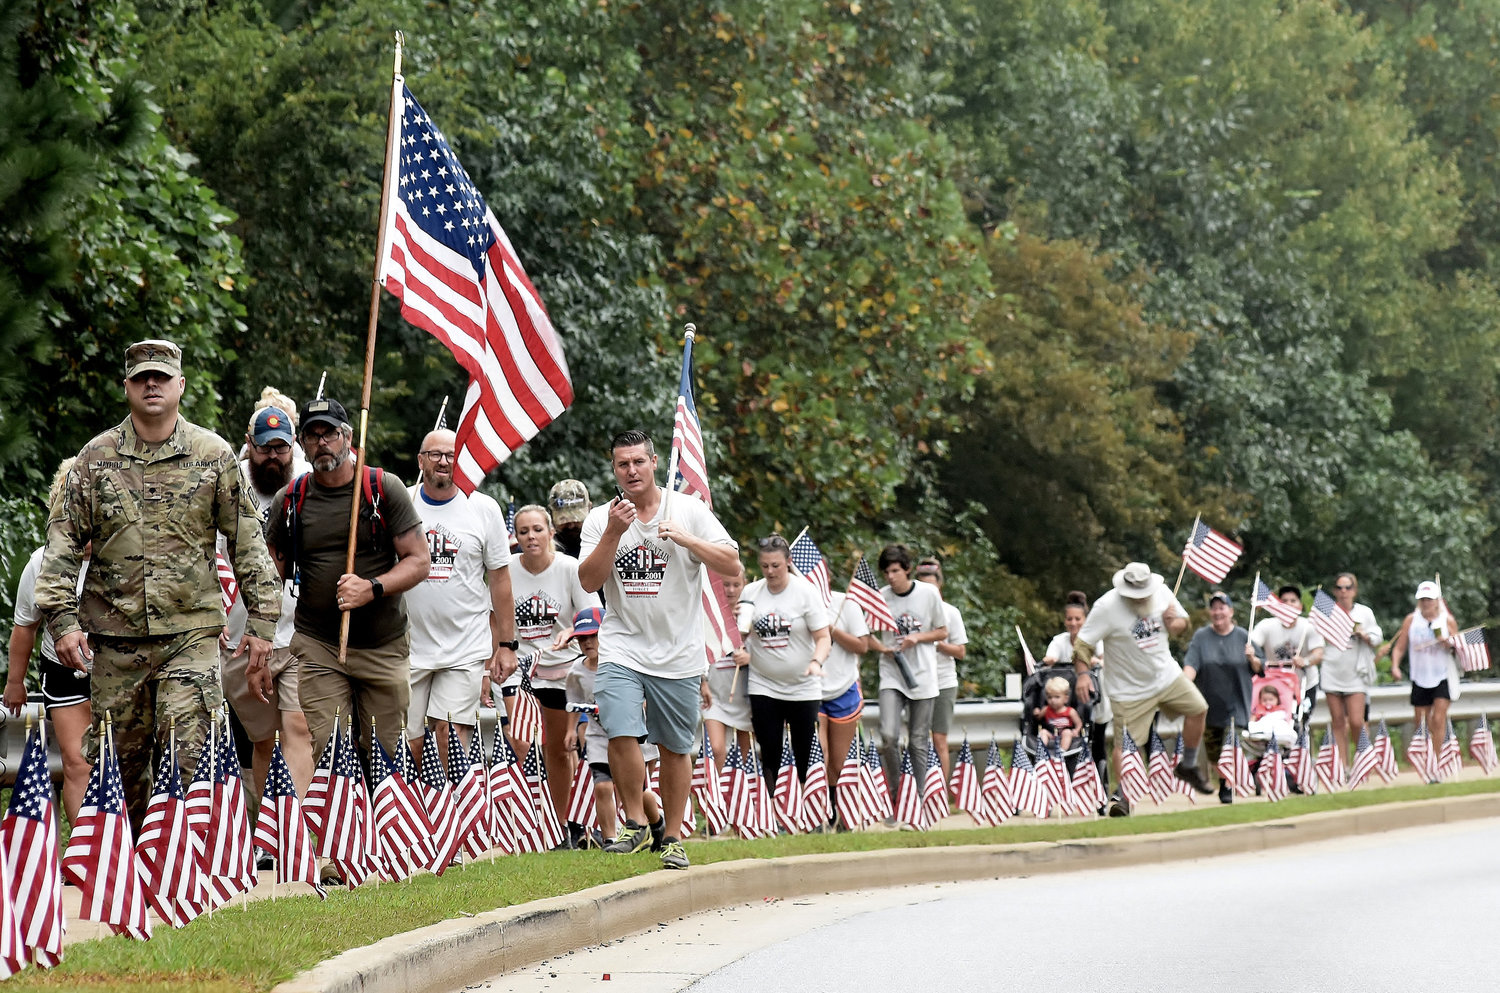 Approximately 100 men, women and children took part in the annual 9/11 March to the Mountain in Cartersville.